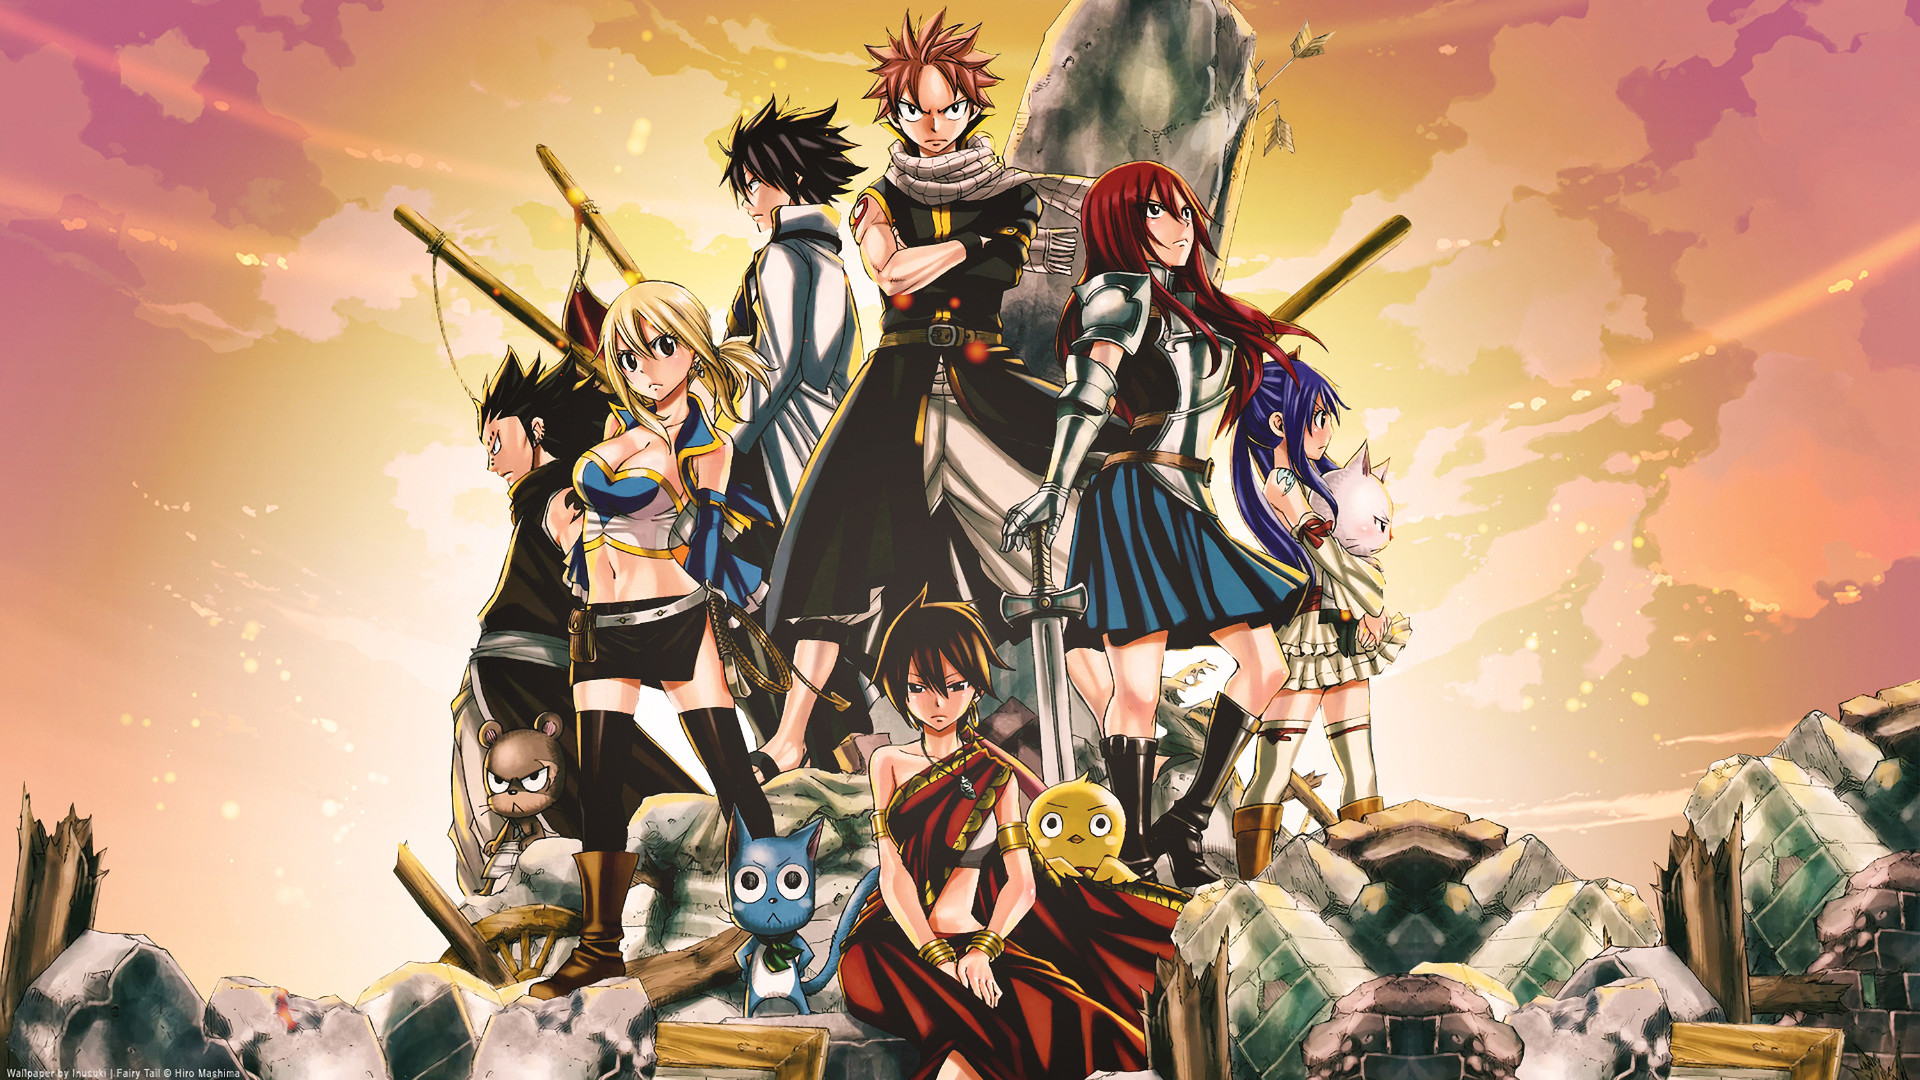 Anime 4k Wallpaper: Fairy Tail 2018 Wallpaper HD (58+ Images